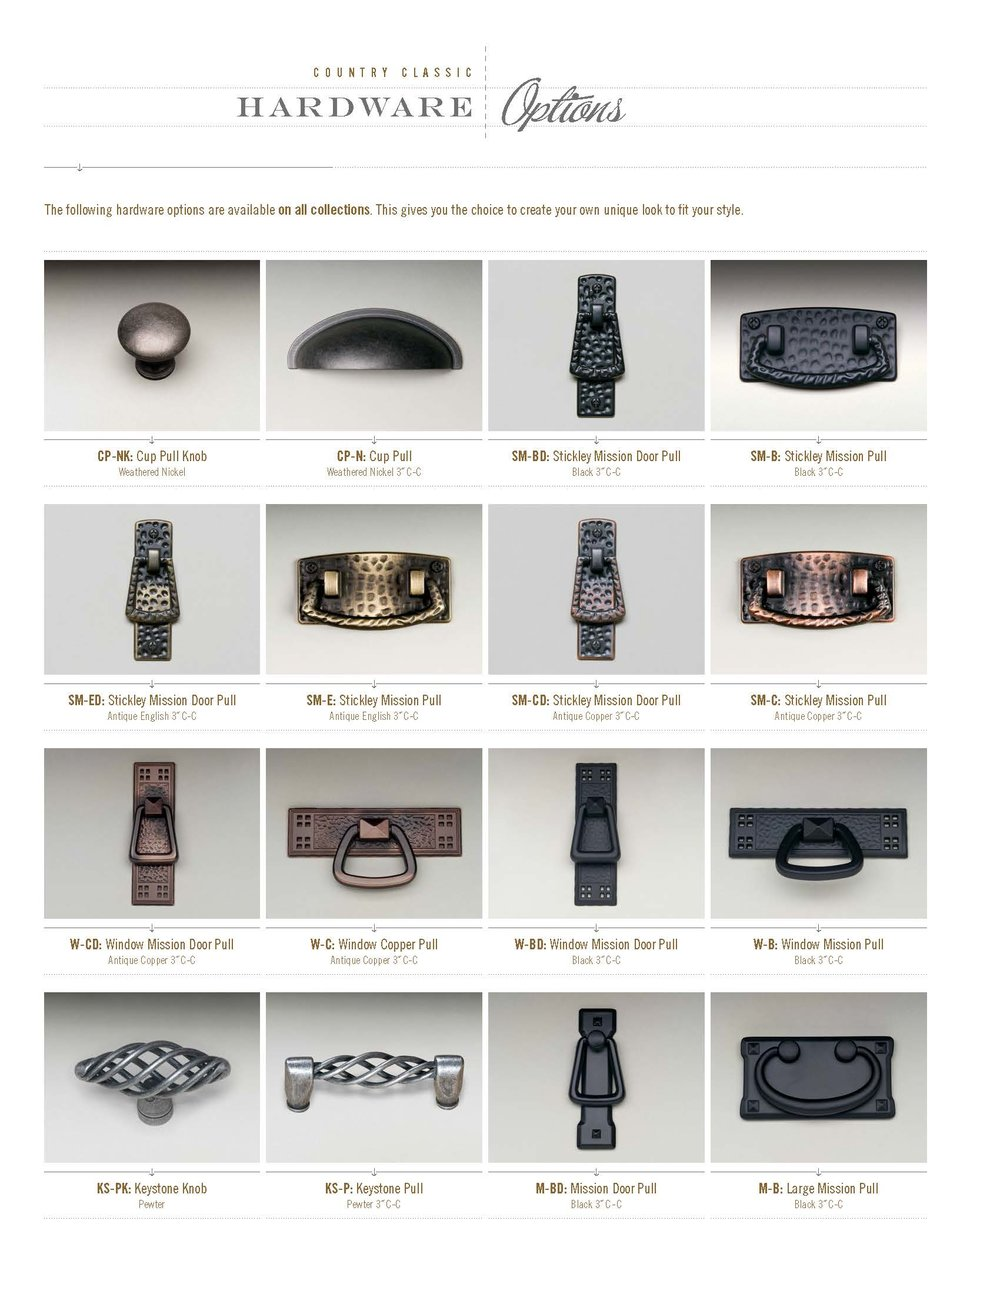 CVW 2016 Hardware Options_Page_1.jpg